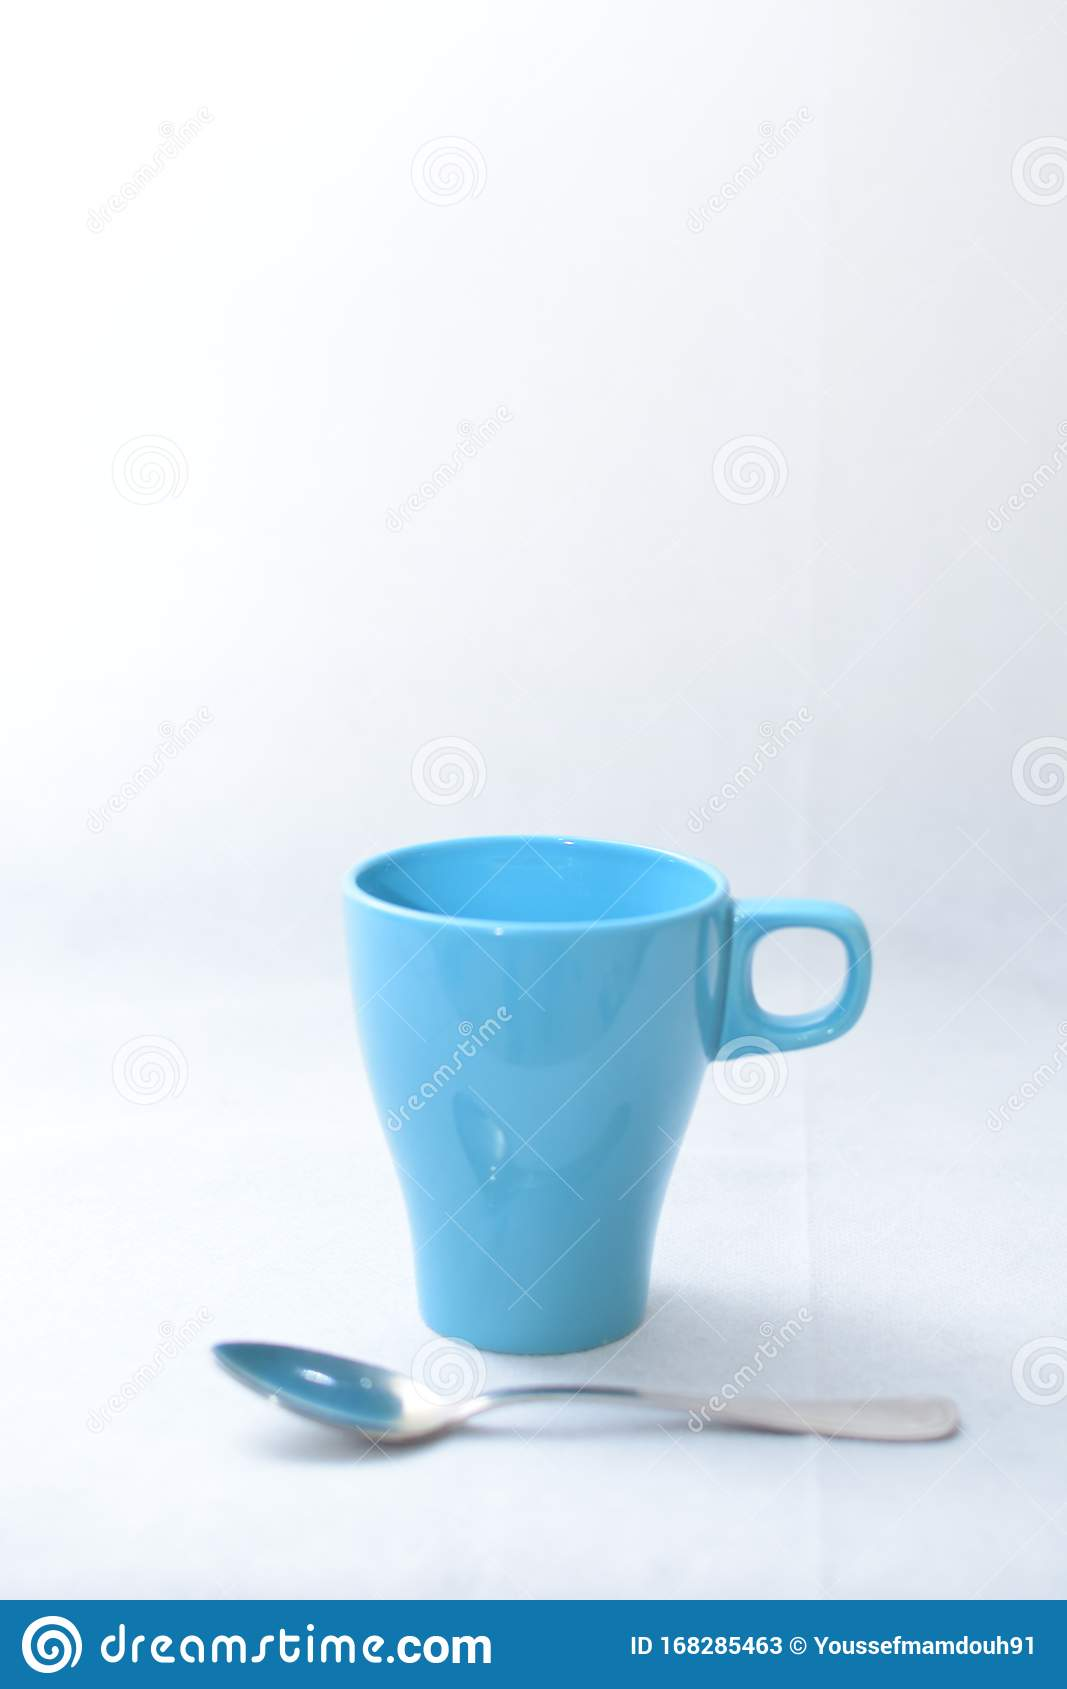 Mockup Set Of Colorful Tea Or Coffee Ceramic Mug Template For Branding Identity And Company Logo Design Drink Ware Dining Stock Image Image Of Ware Colorful 168285463